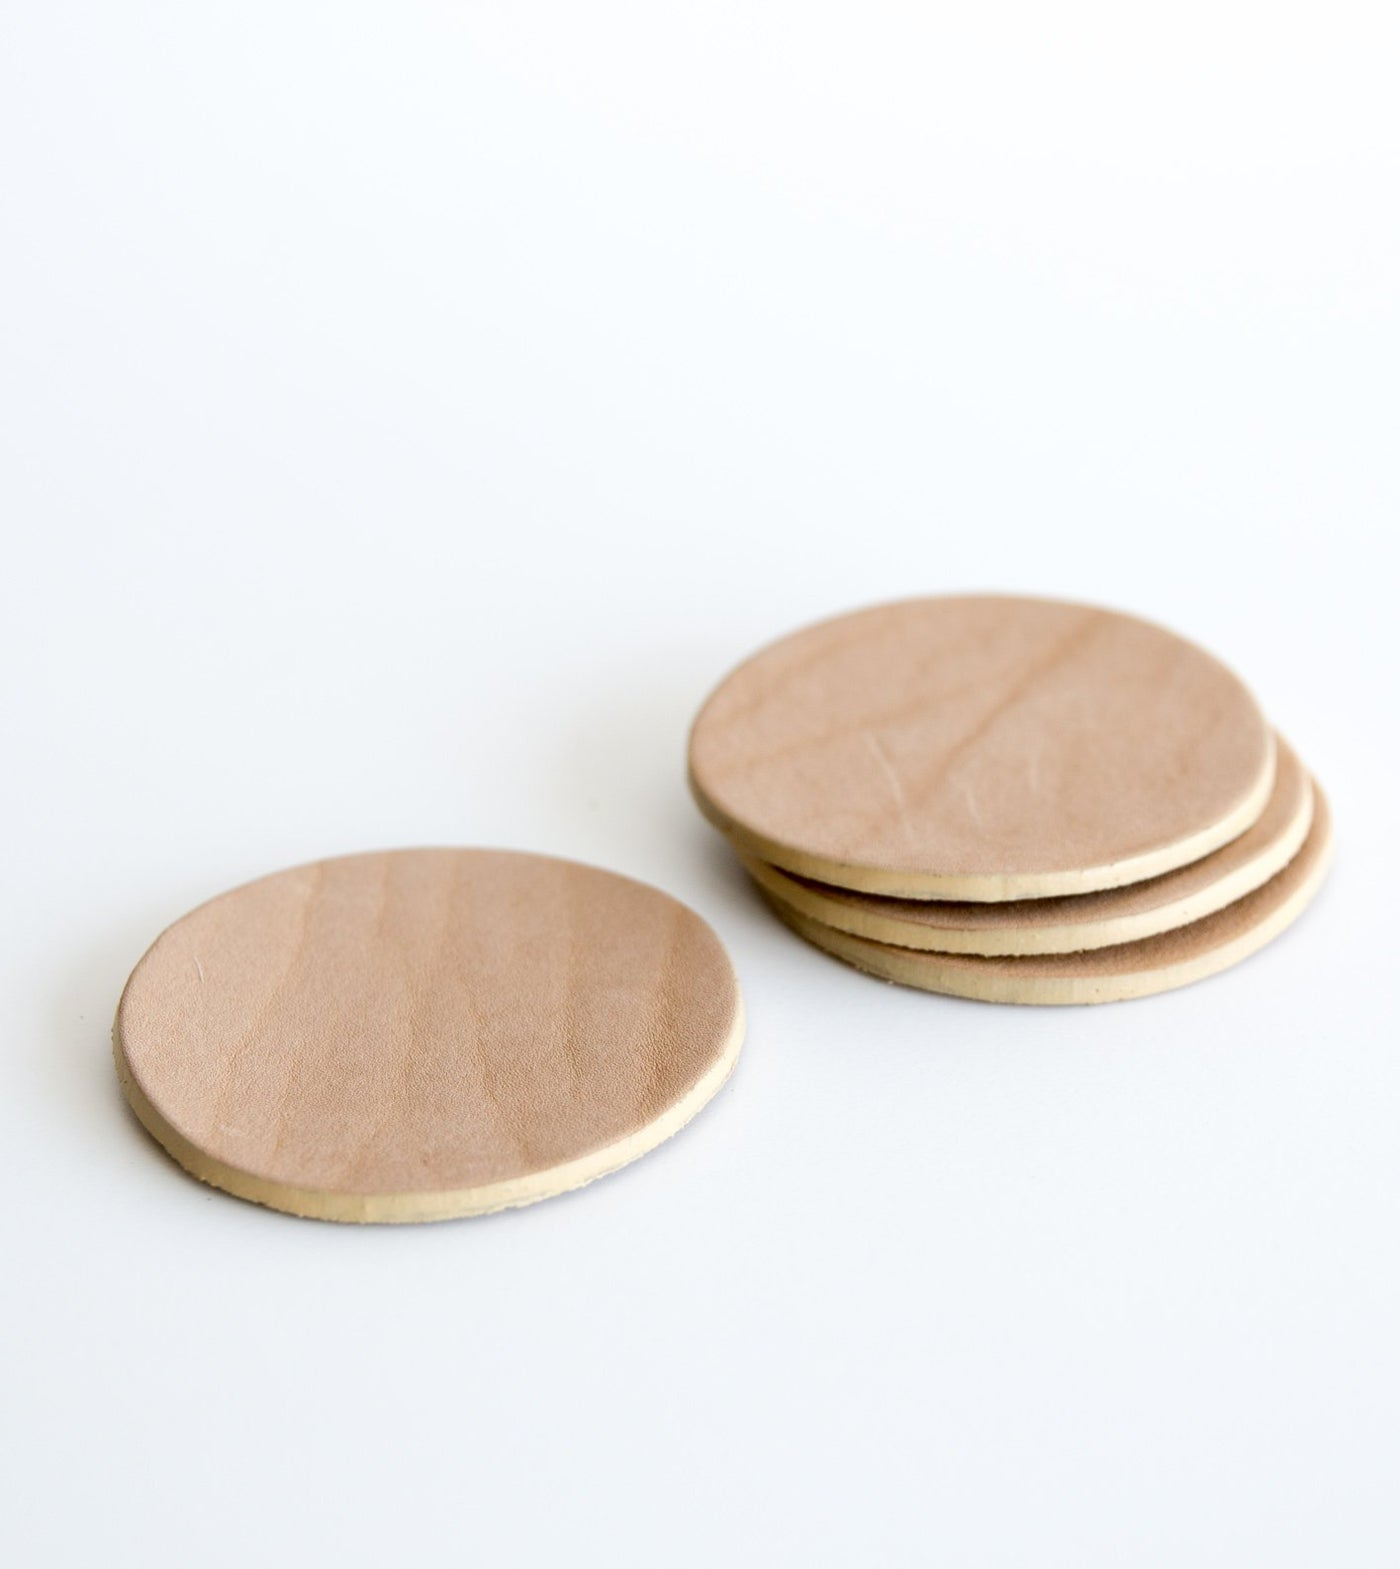 leather coasters, leather coasters australia, australian made leather coasters